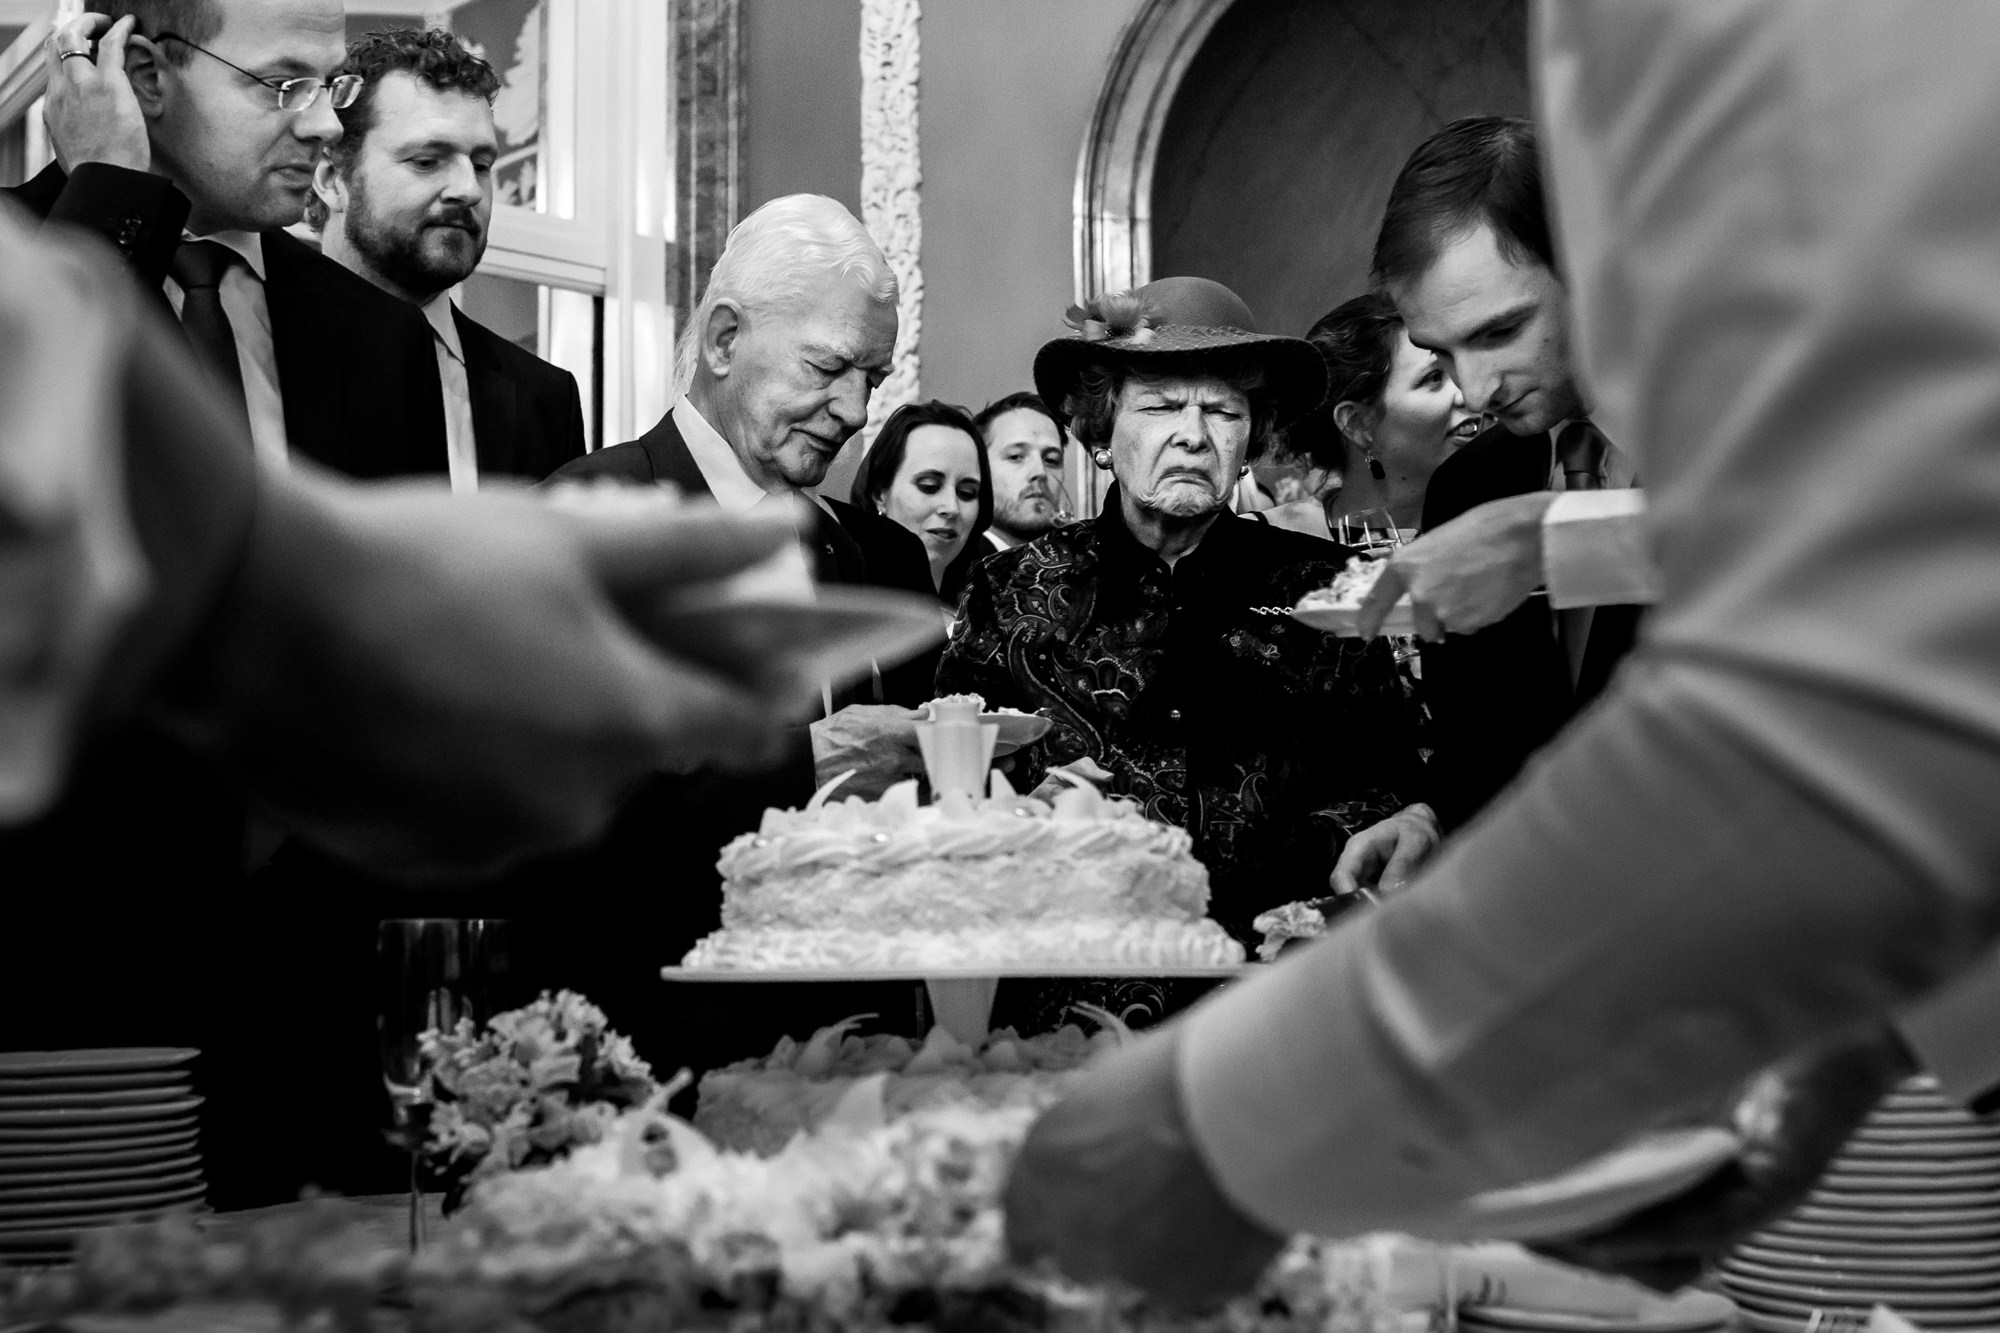 Guest turns her nose up at wedding cake - photo by Fotobelle